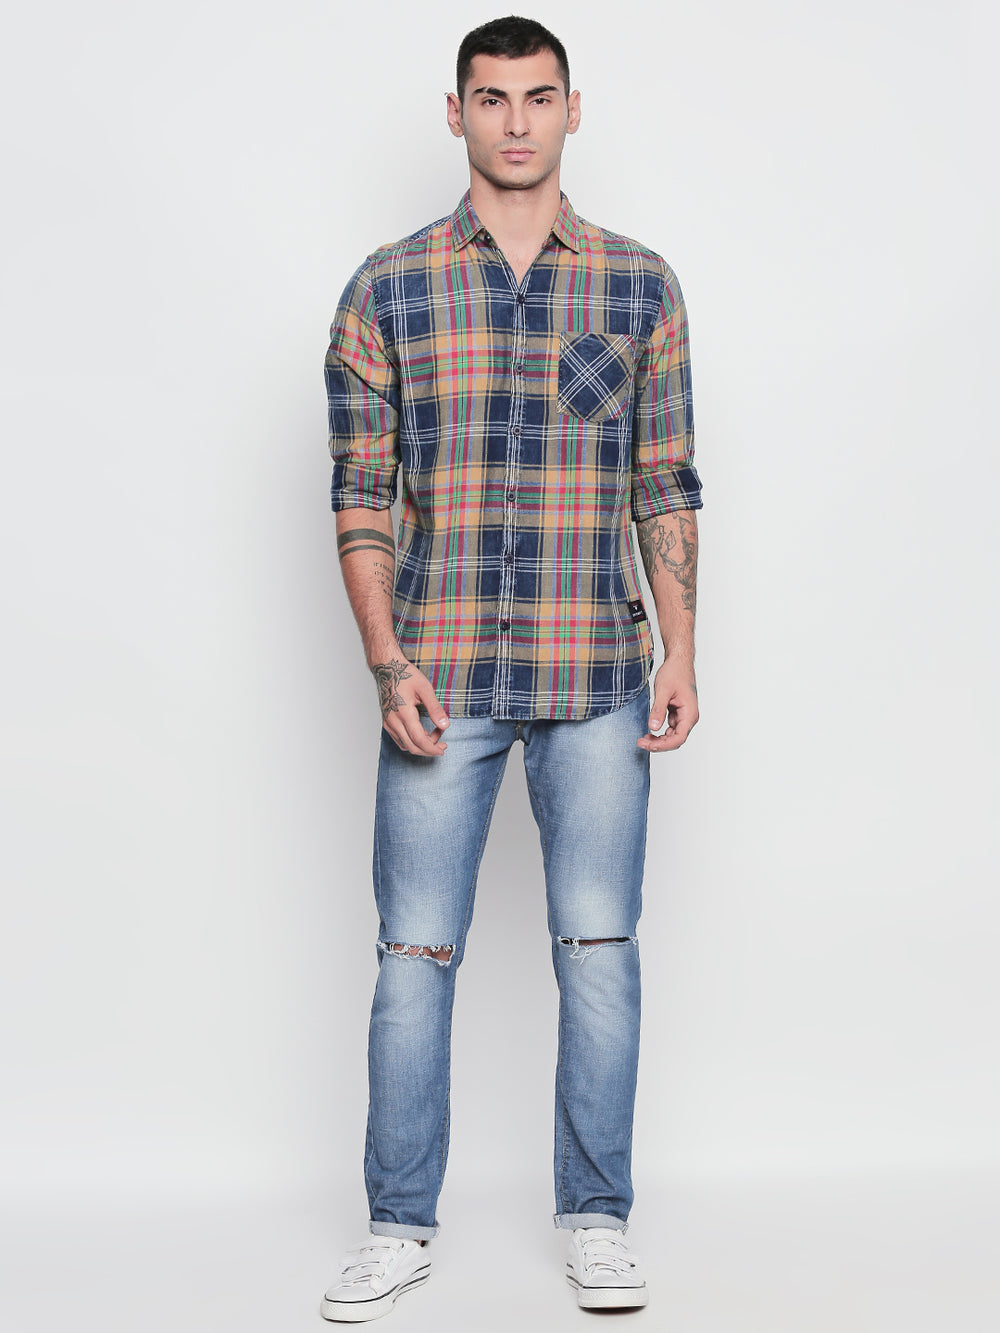 Disrupt Beige & Navy Cotton Full Sleeve Checkered Shirt